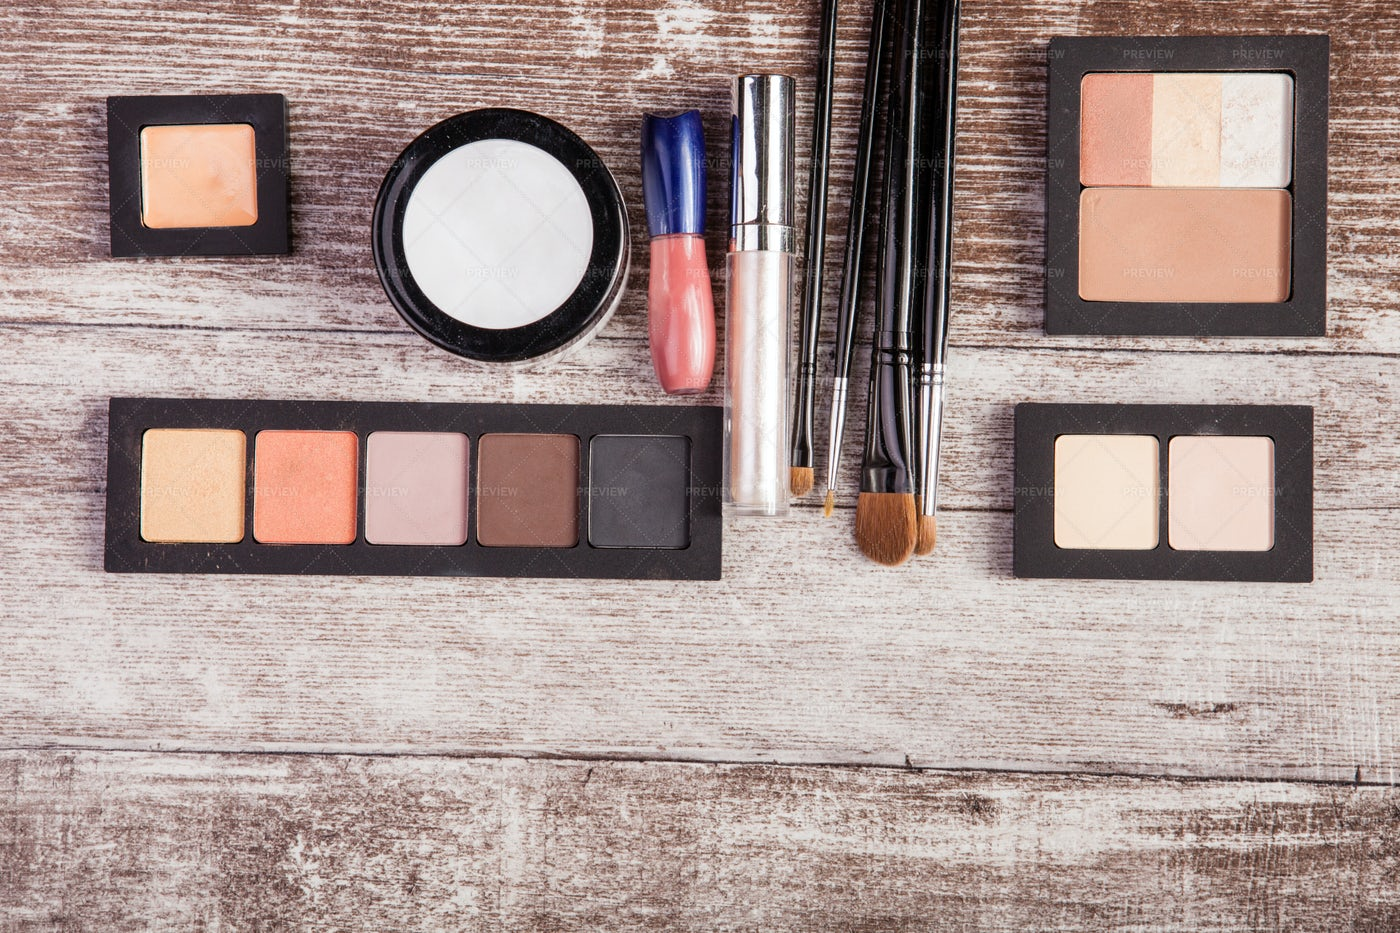 Make Up Products On Wooden Table: Stock Photos